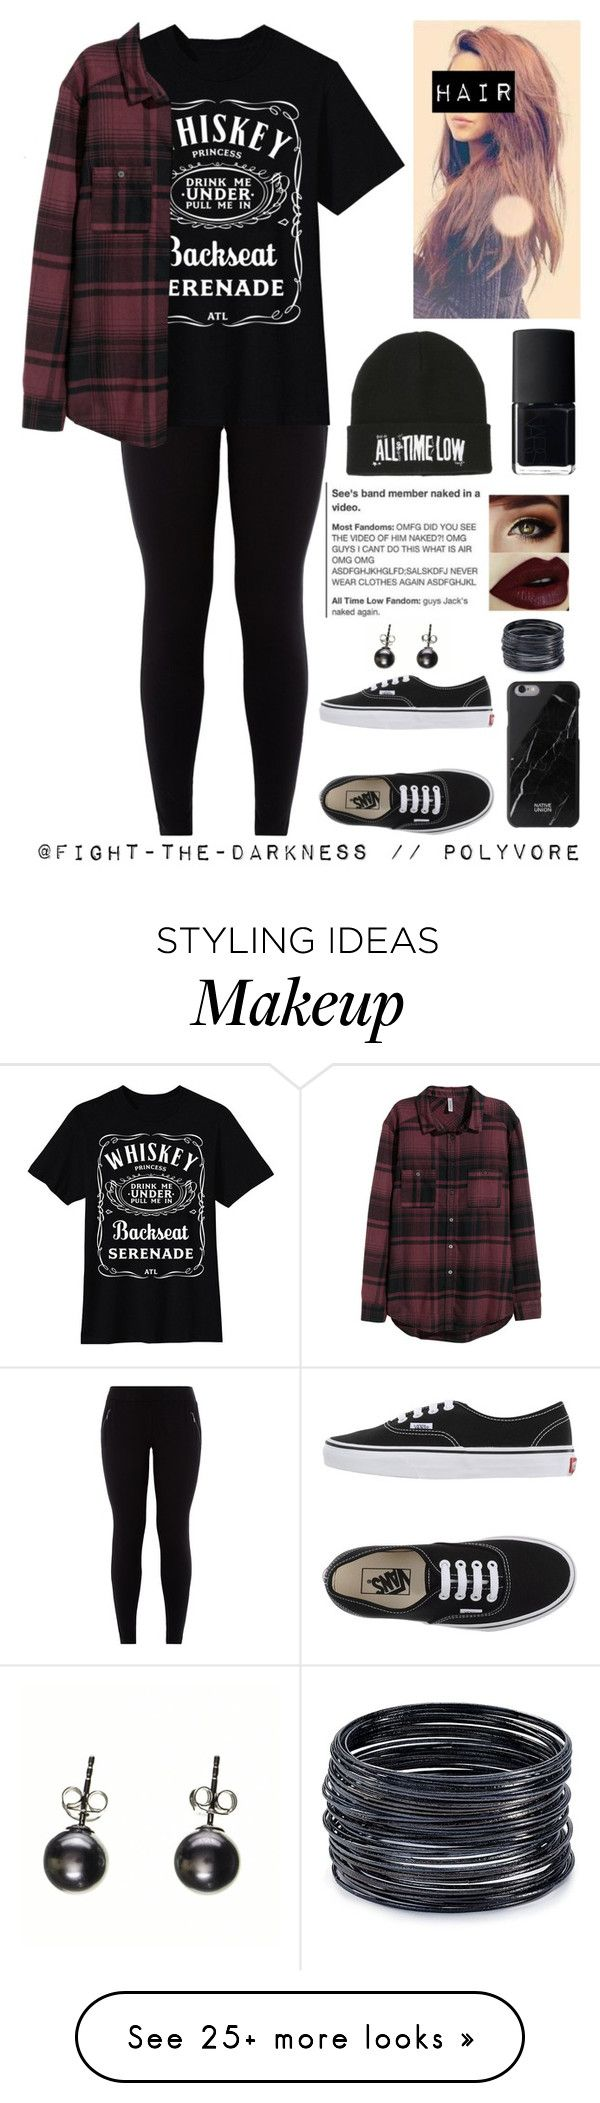 """...Whiskey Princess,Drink Me Under,Pull Me In..."" by fight-the-darkness on Polyvore featuring Vans, ABS by Allen Schwartz, H&M, Native Union and NARS Cosmetics"